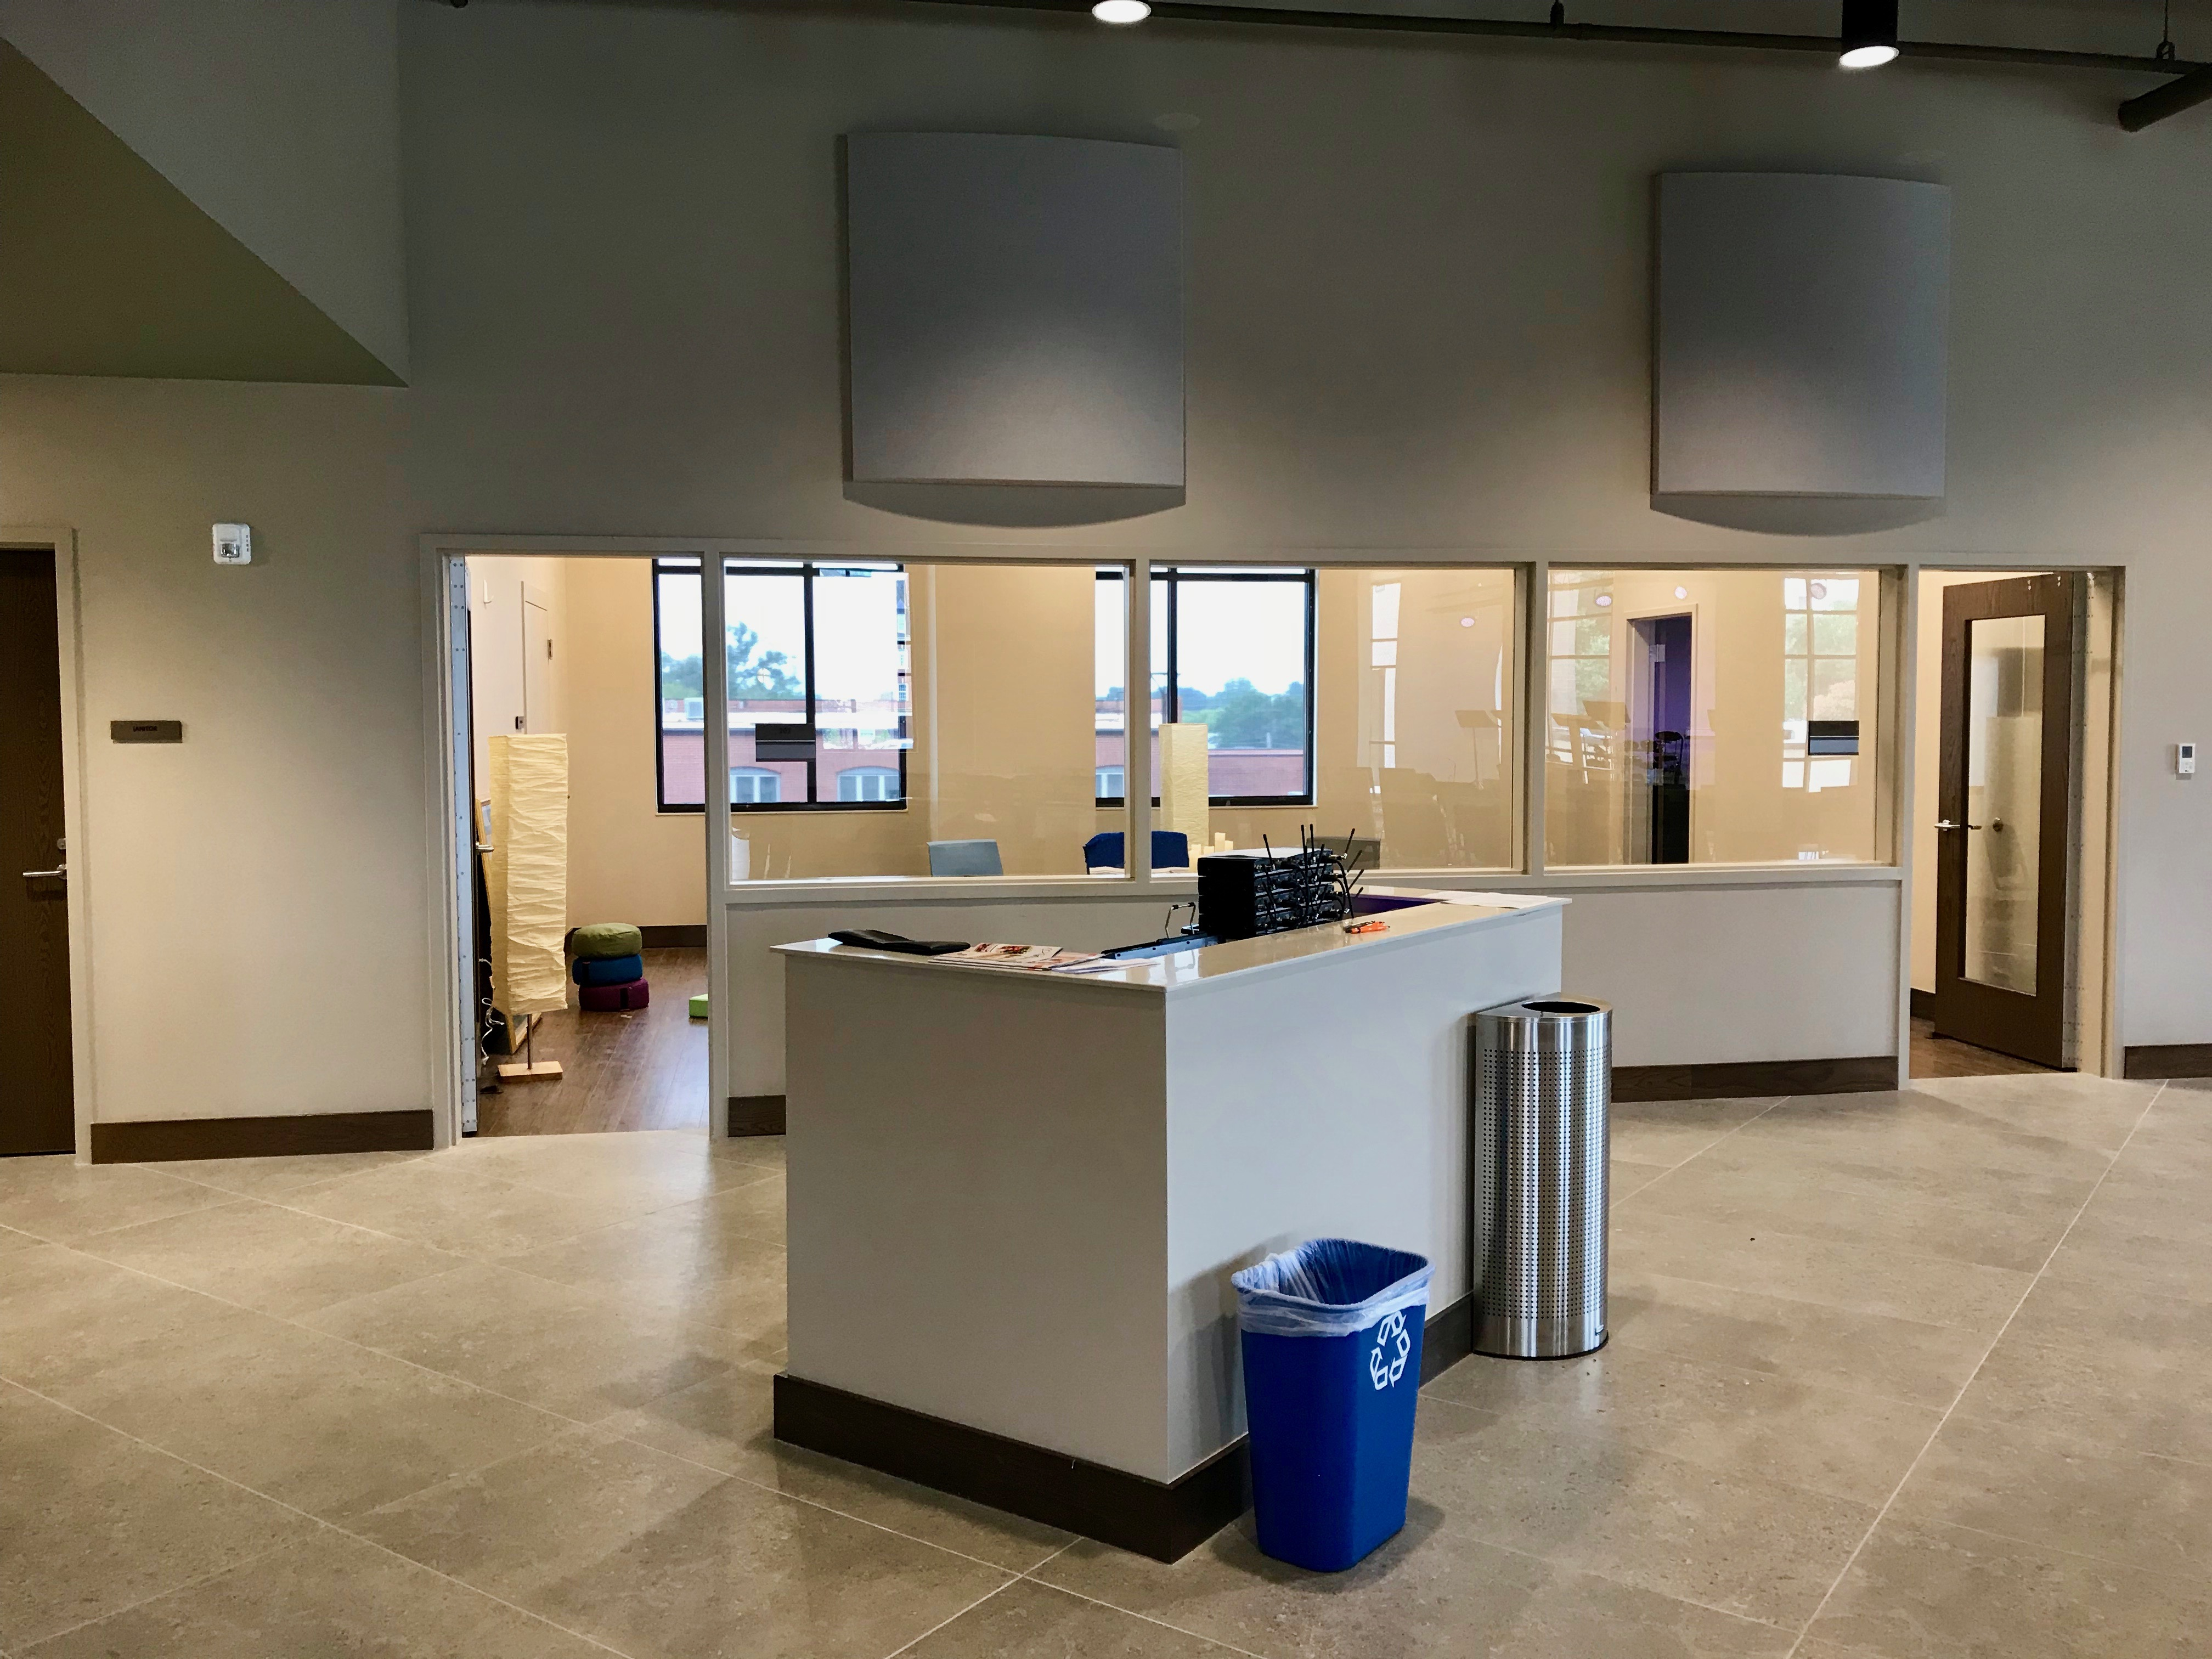 Meeting rooms behind the worship area